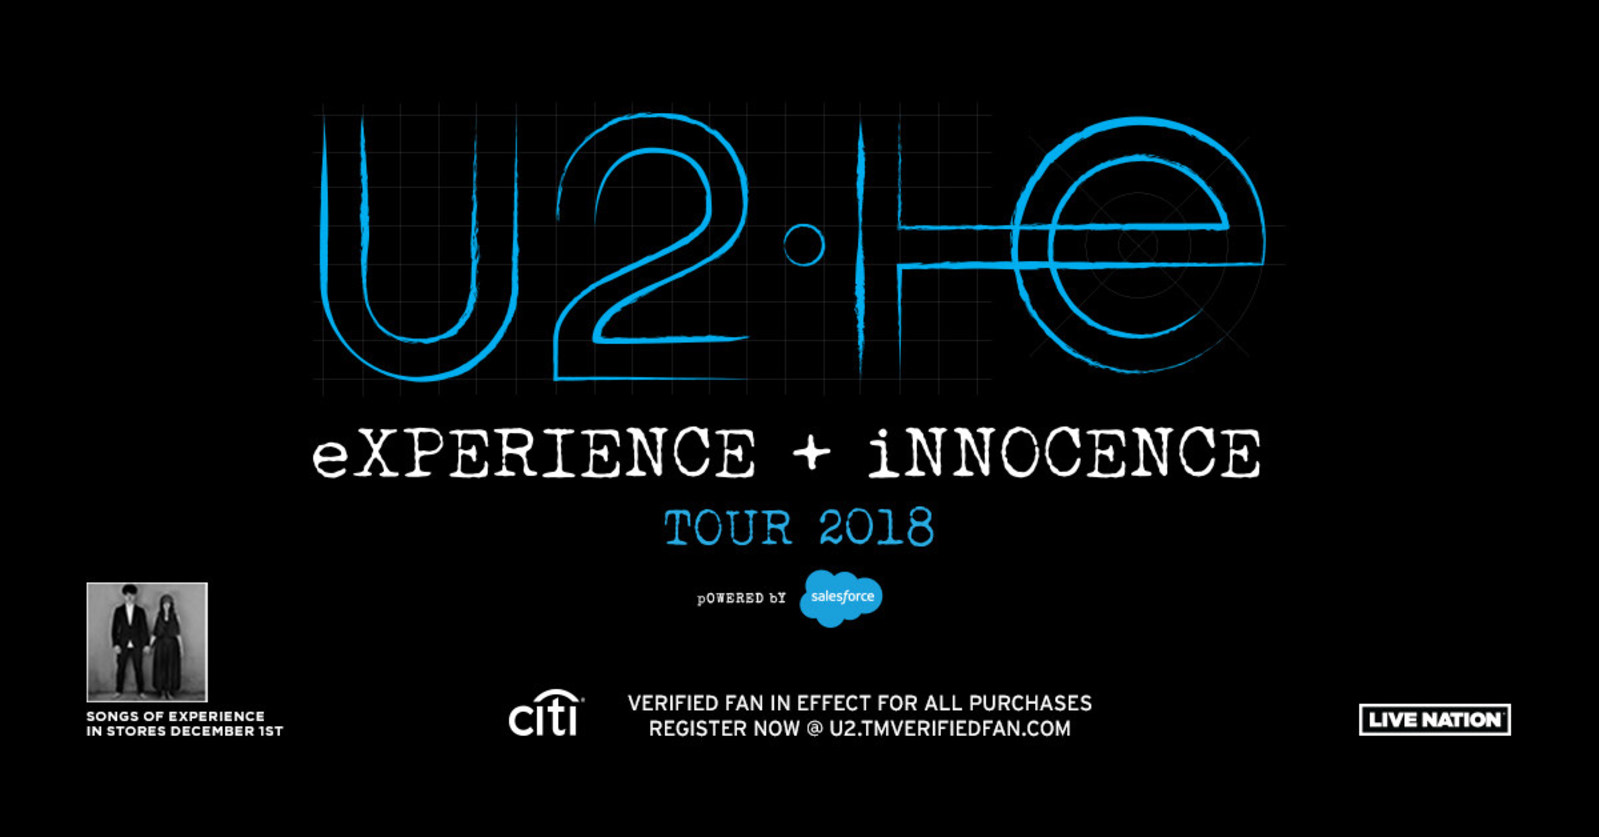 U2 Reveals 'Songs of Experience' Album and eXPERIENCE + iNNOCENCE